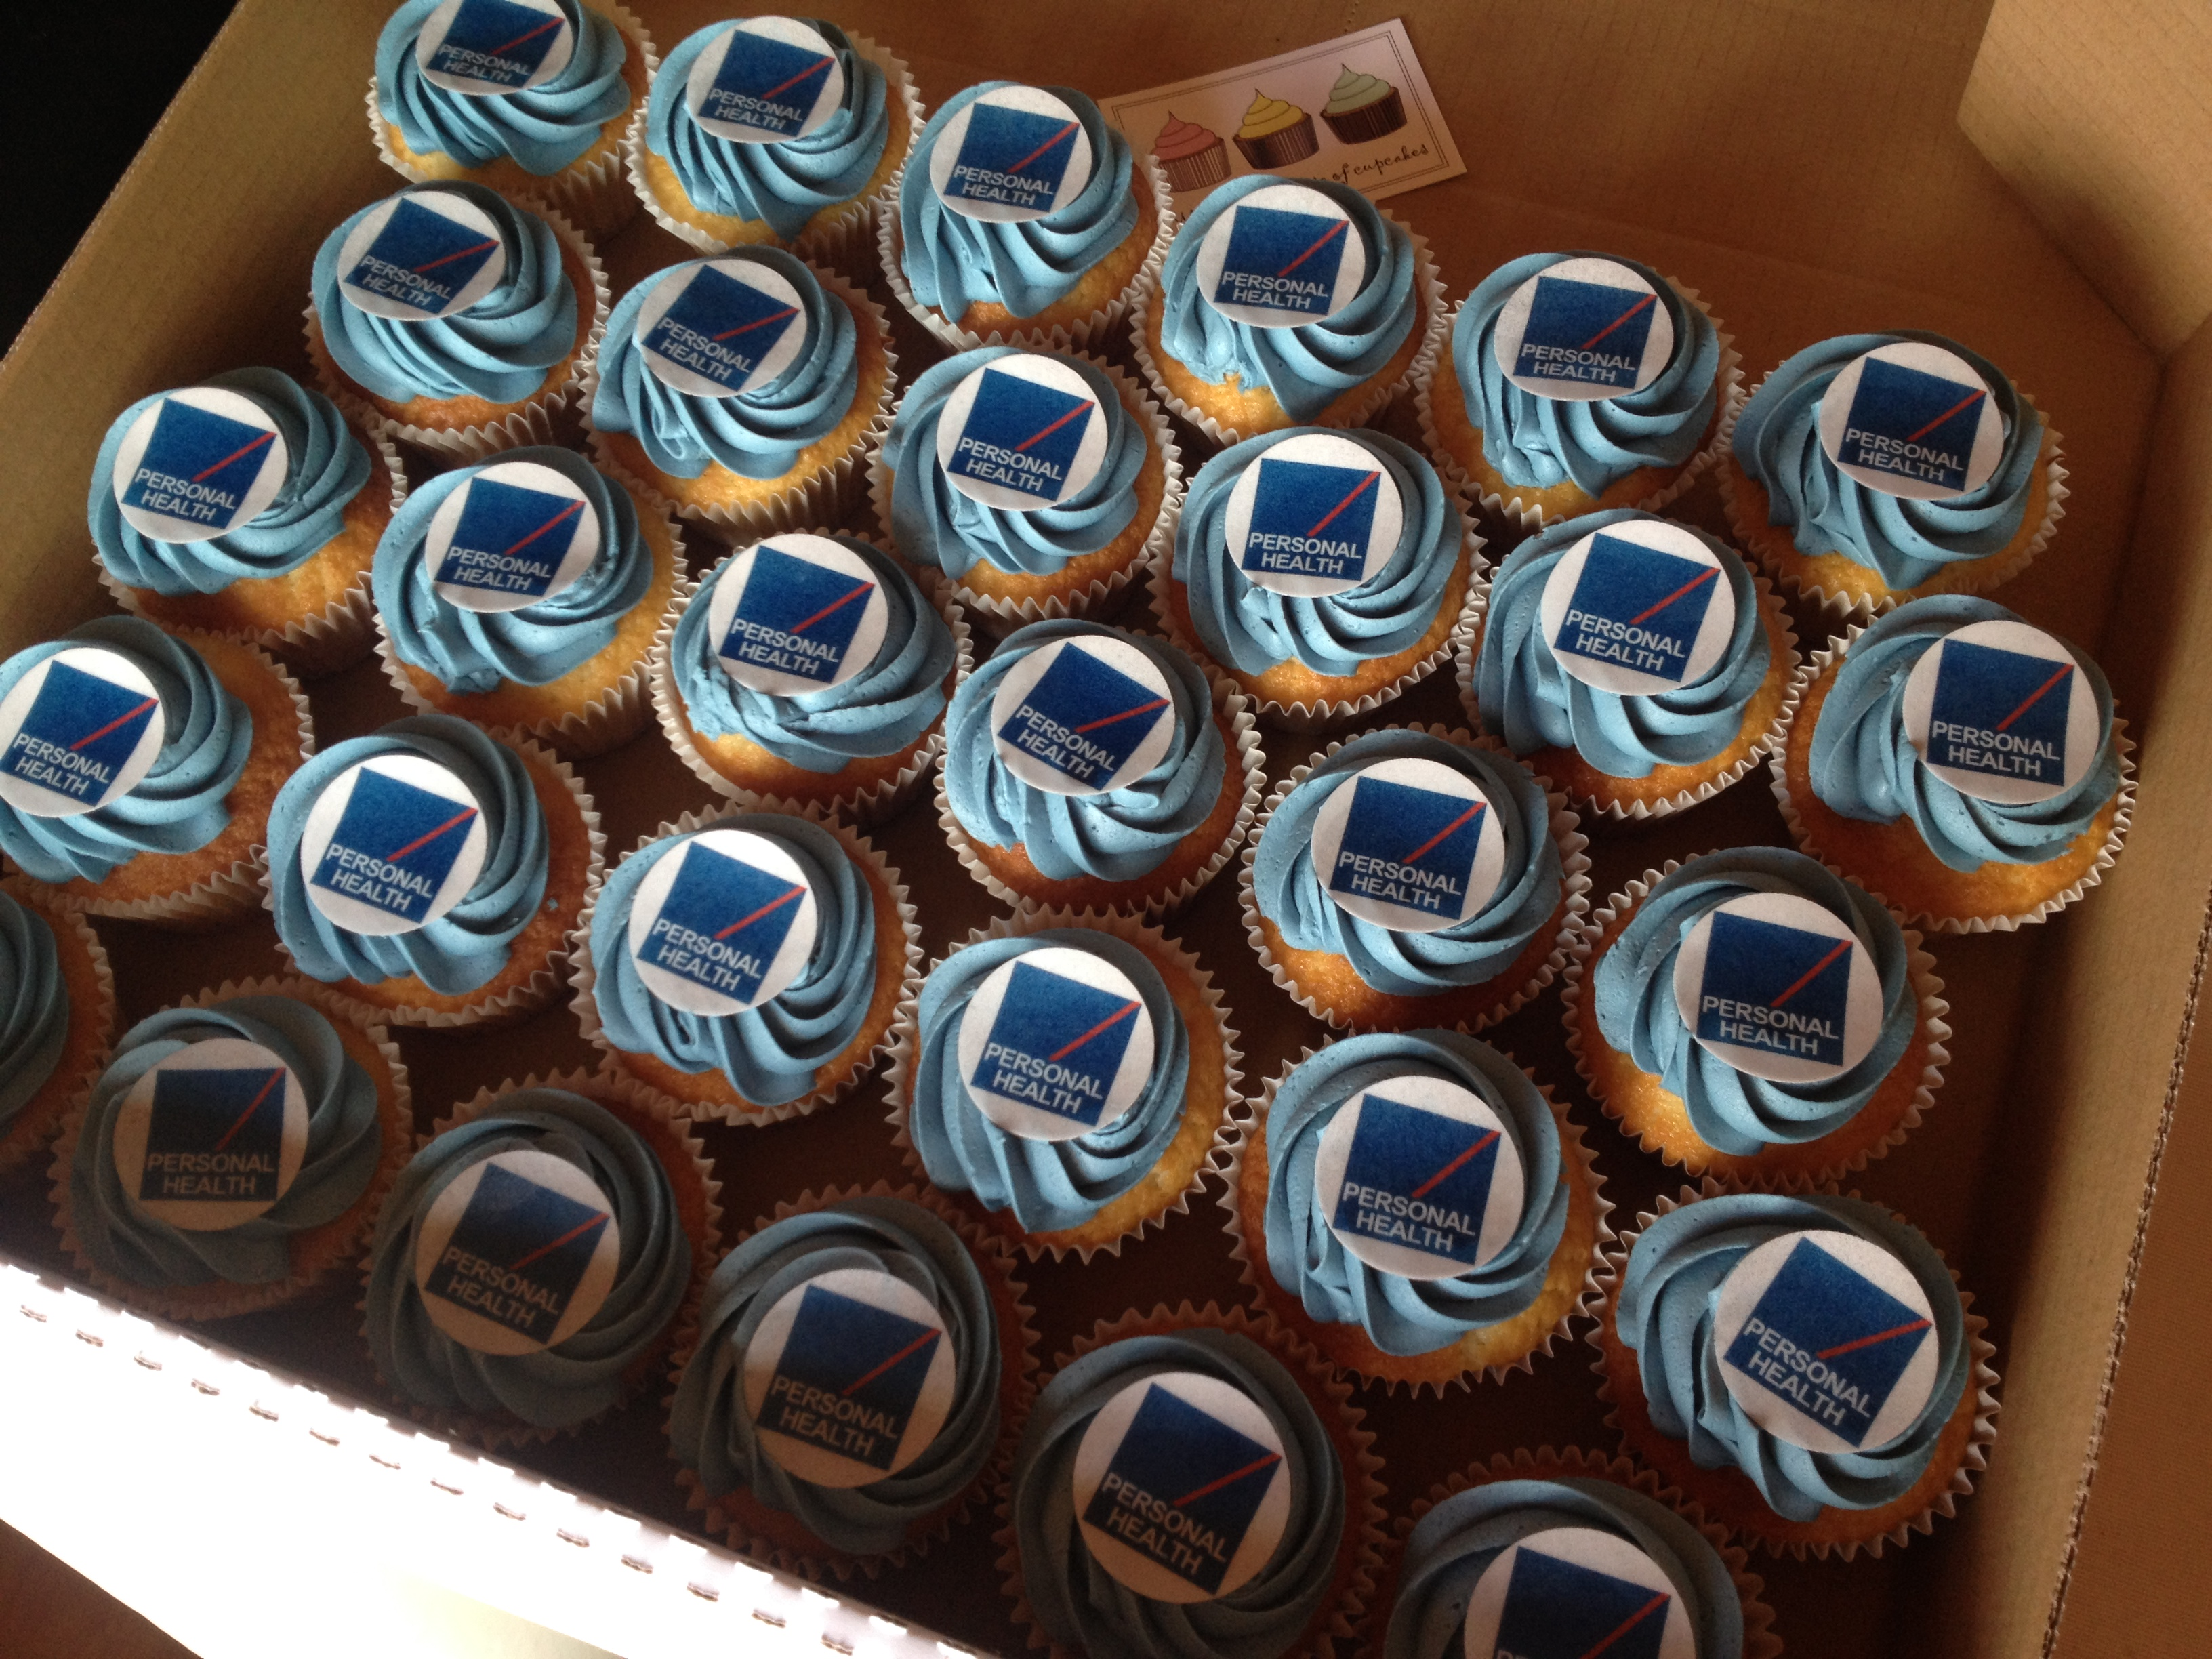 Health On Line Corporate Cupcakes